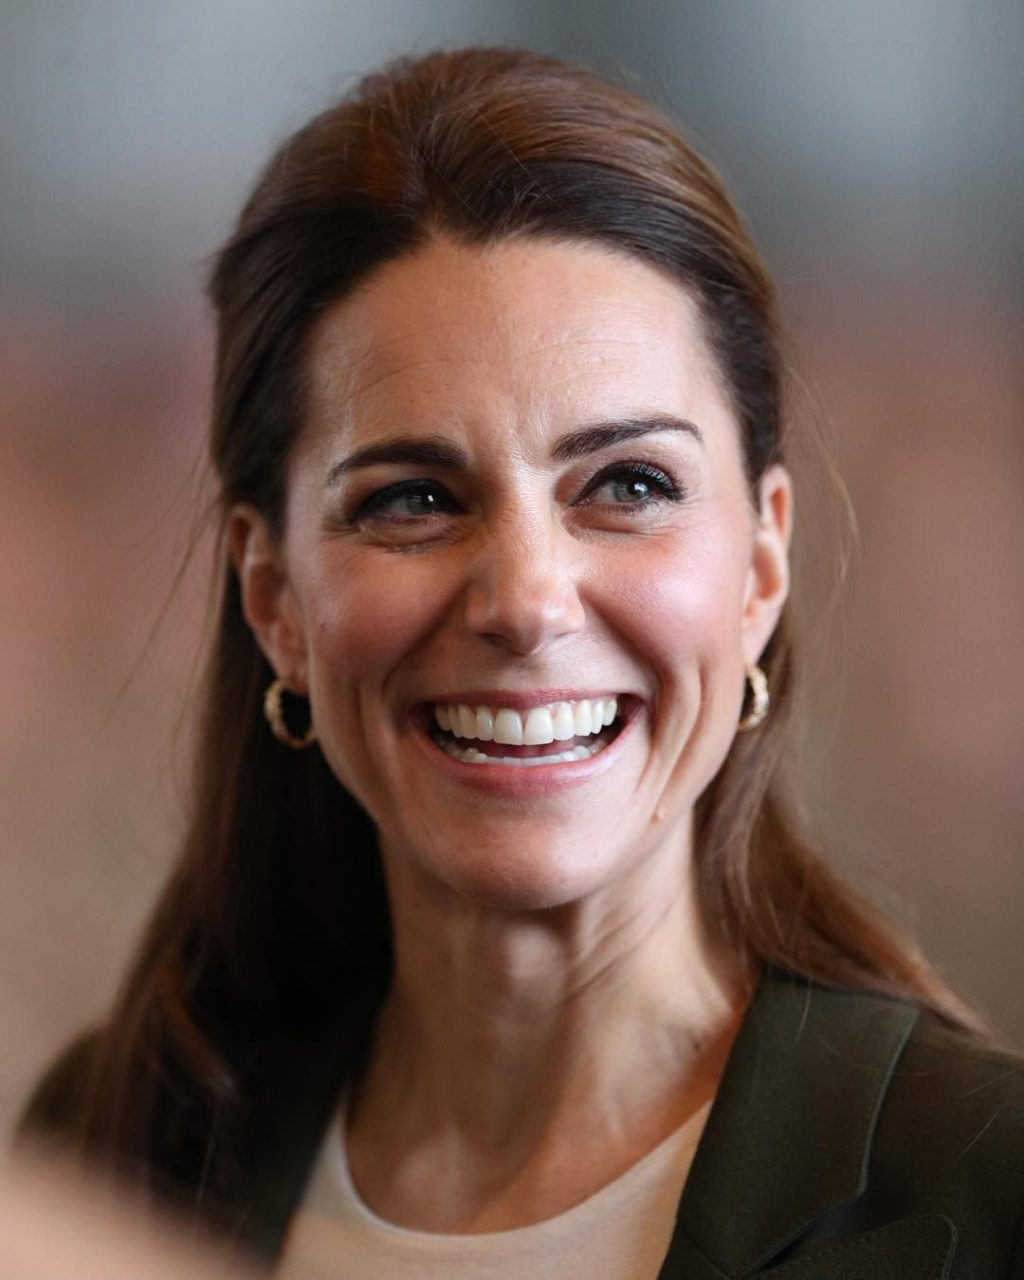 The Somewhat Surprising Way Kate Middleton Celebrated Her 37th Birthday